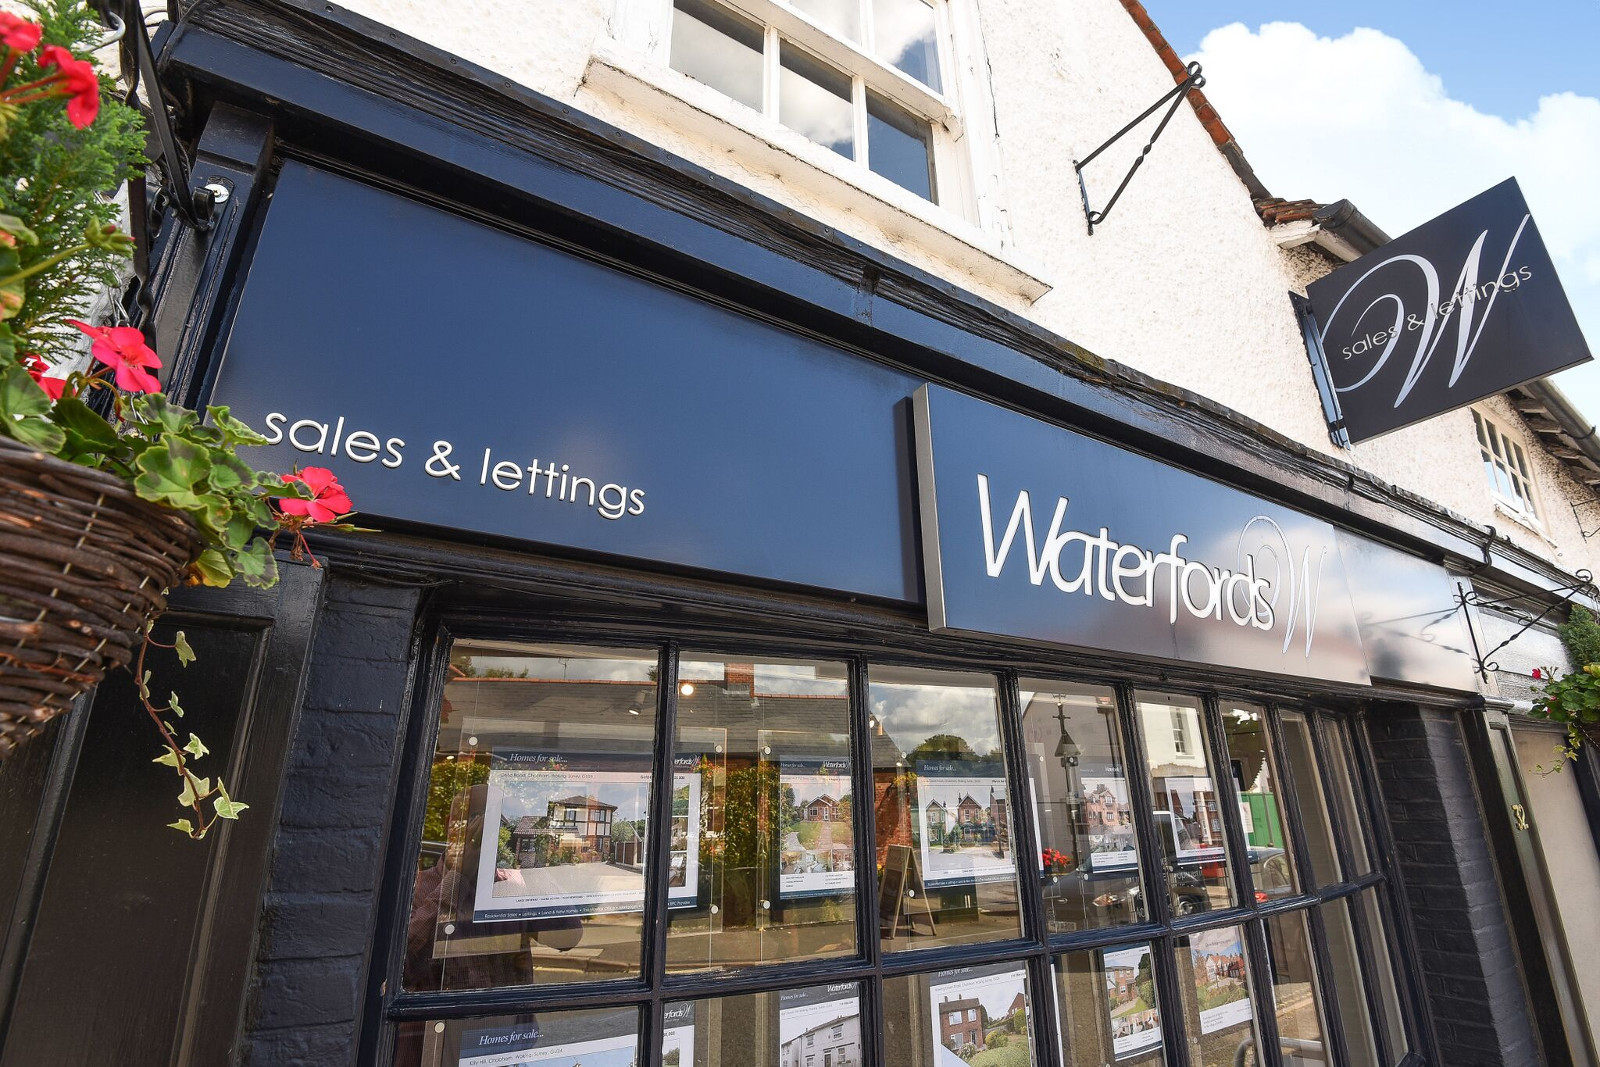 Waterfords | Chobham Sales | Branch image 1